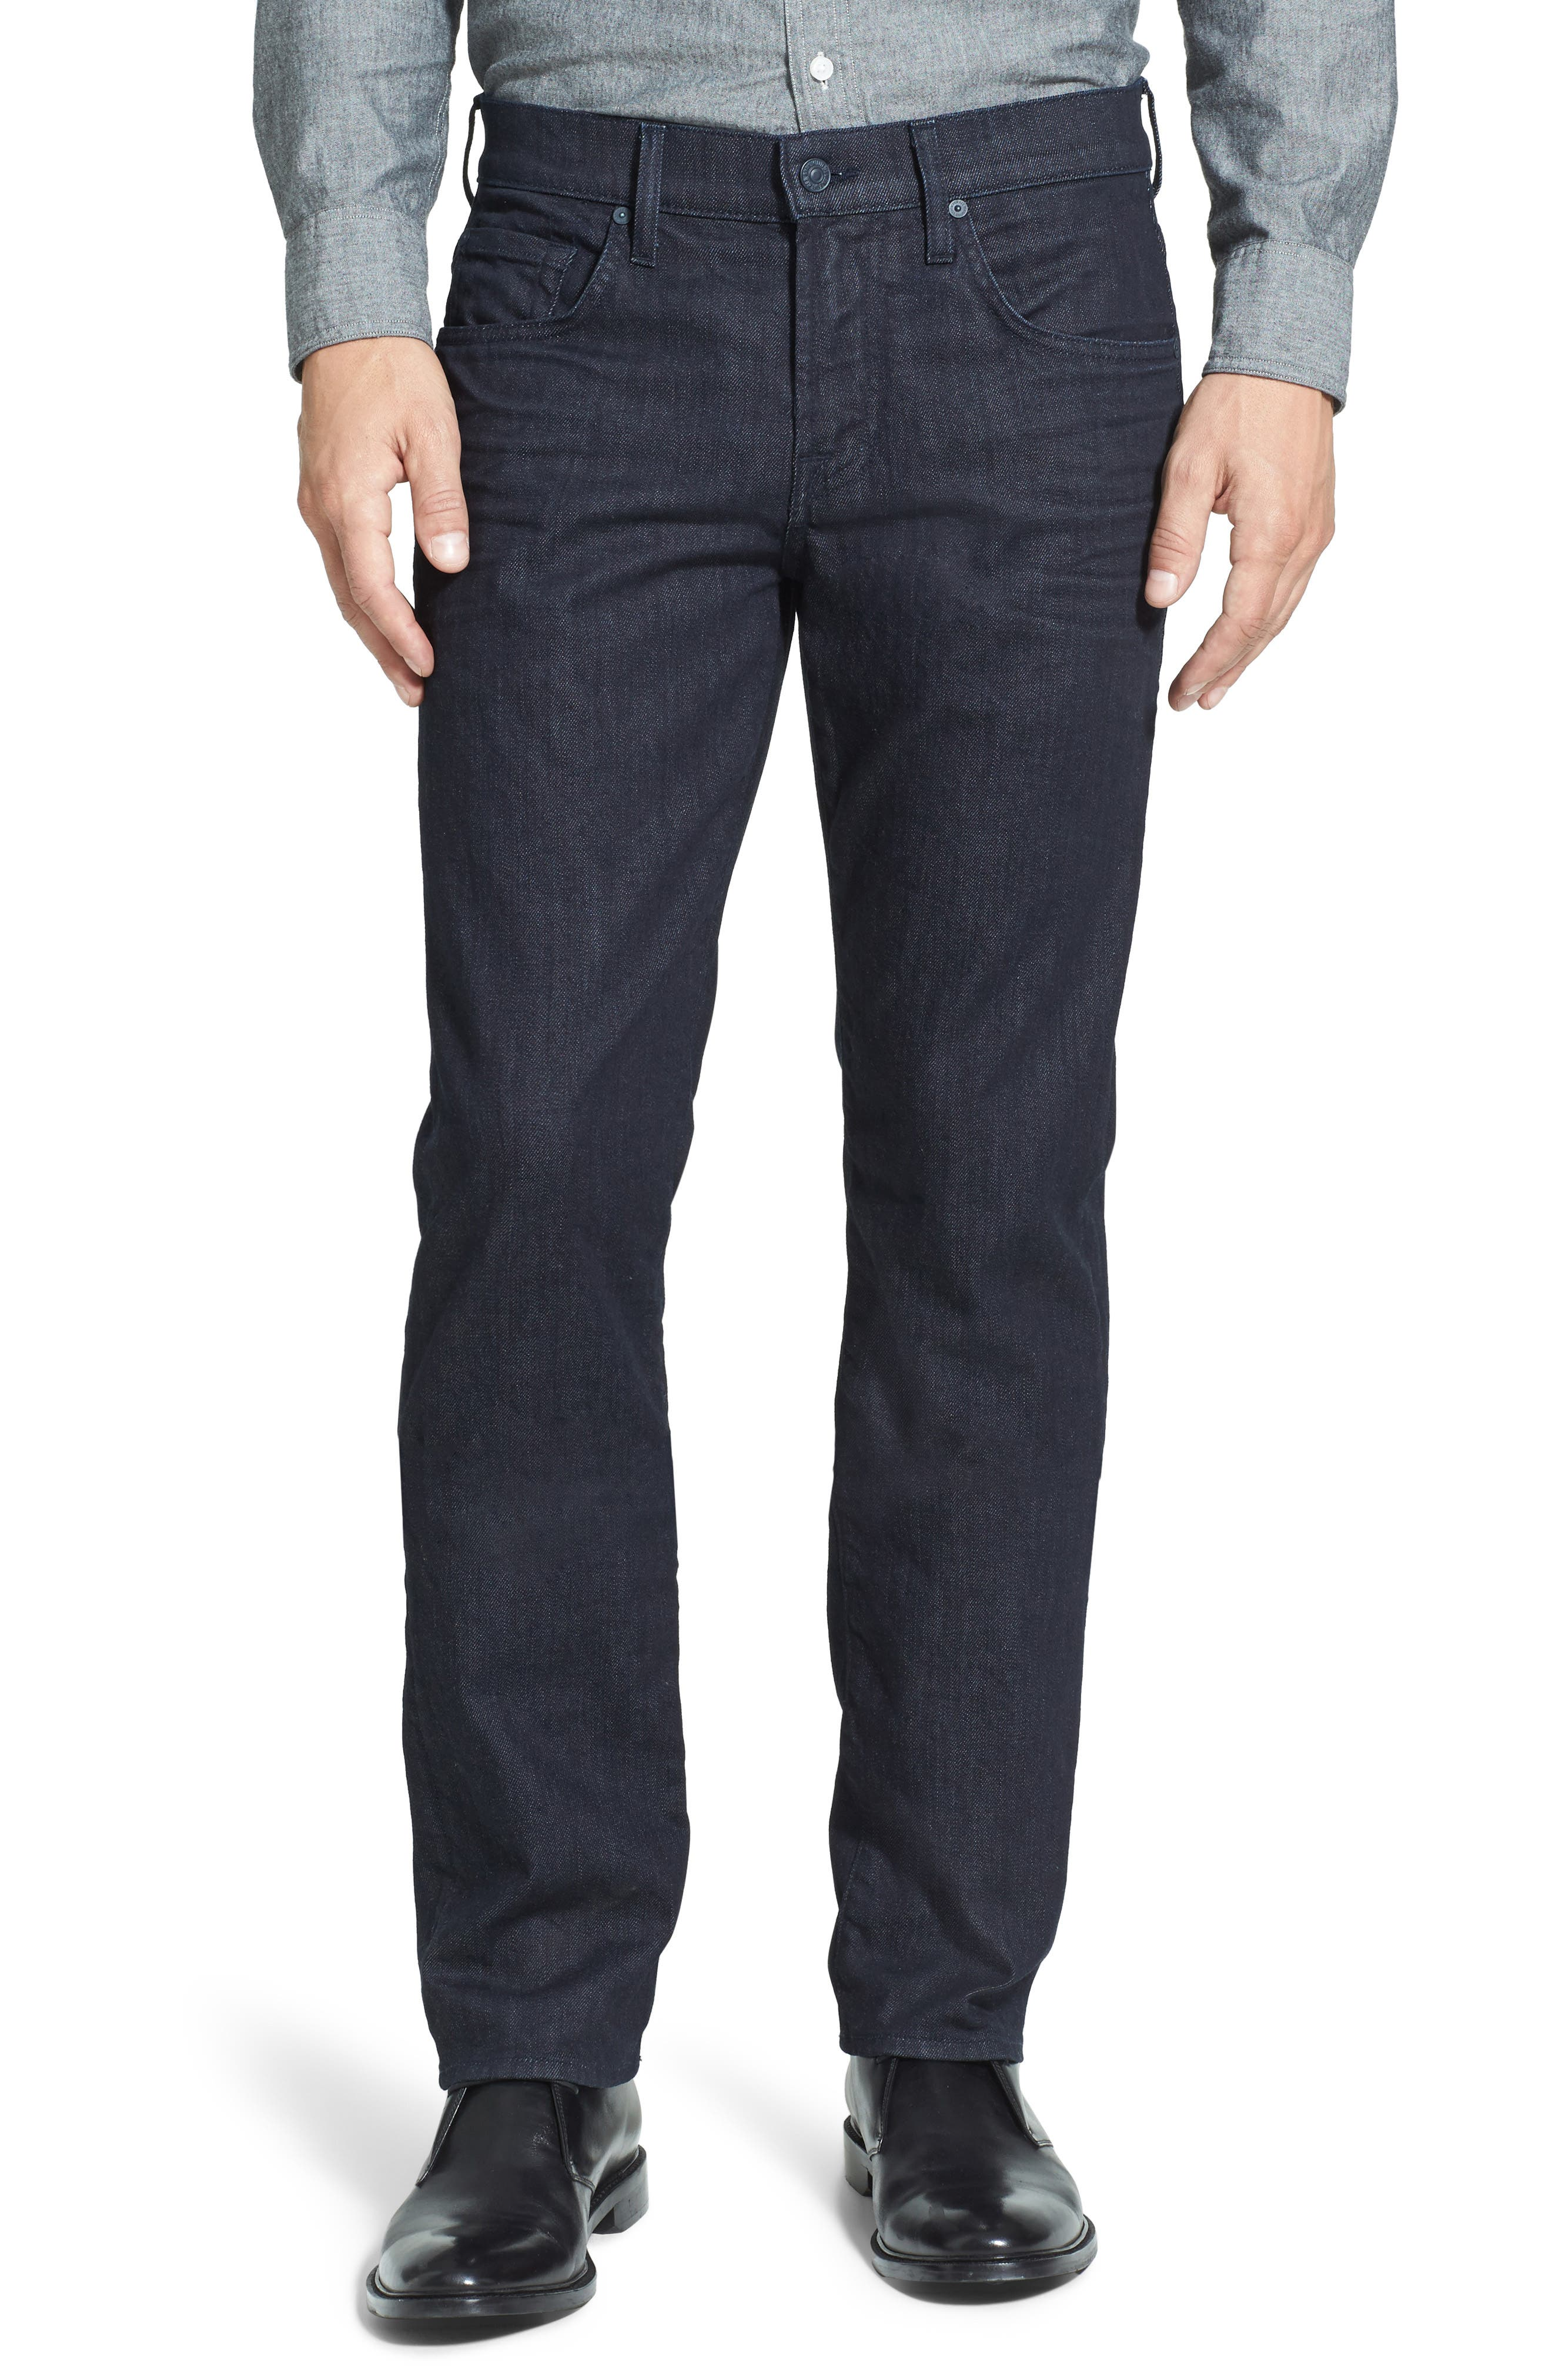 7 For All MankindR Men's 7 For All Mankind The Straight Luxe Performance Slim Straight Leg Jeans,  29 - Blue